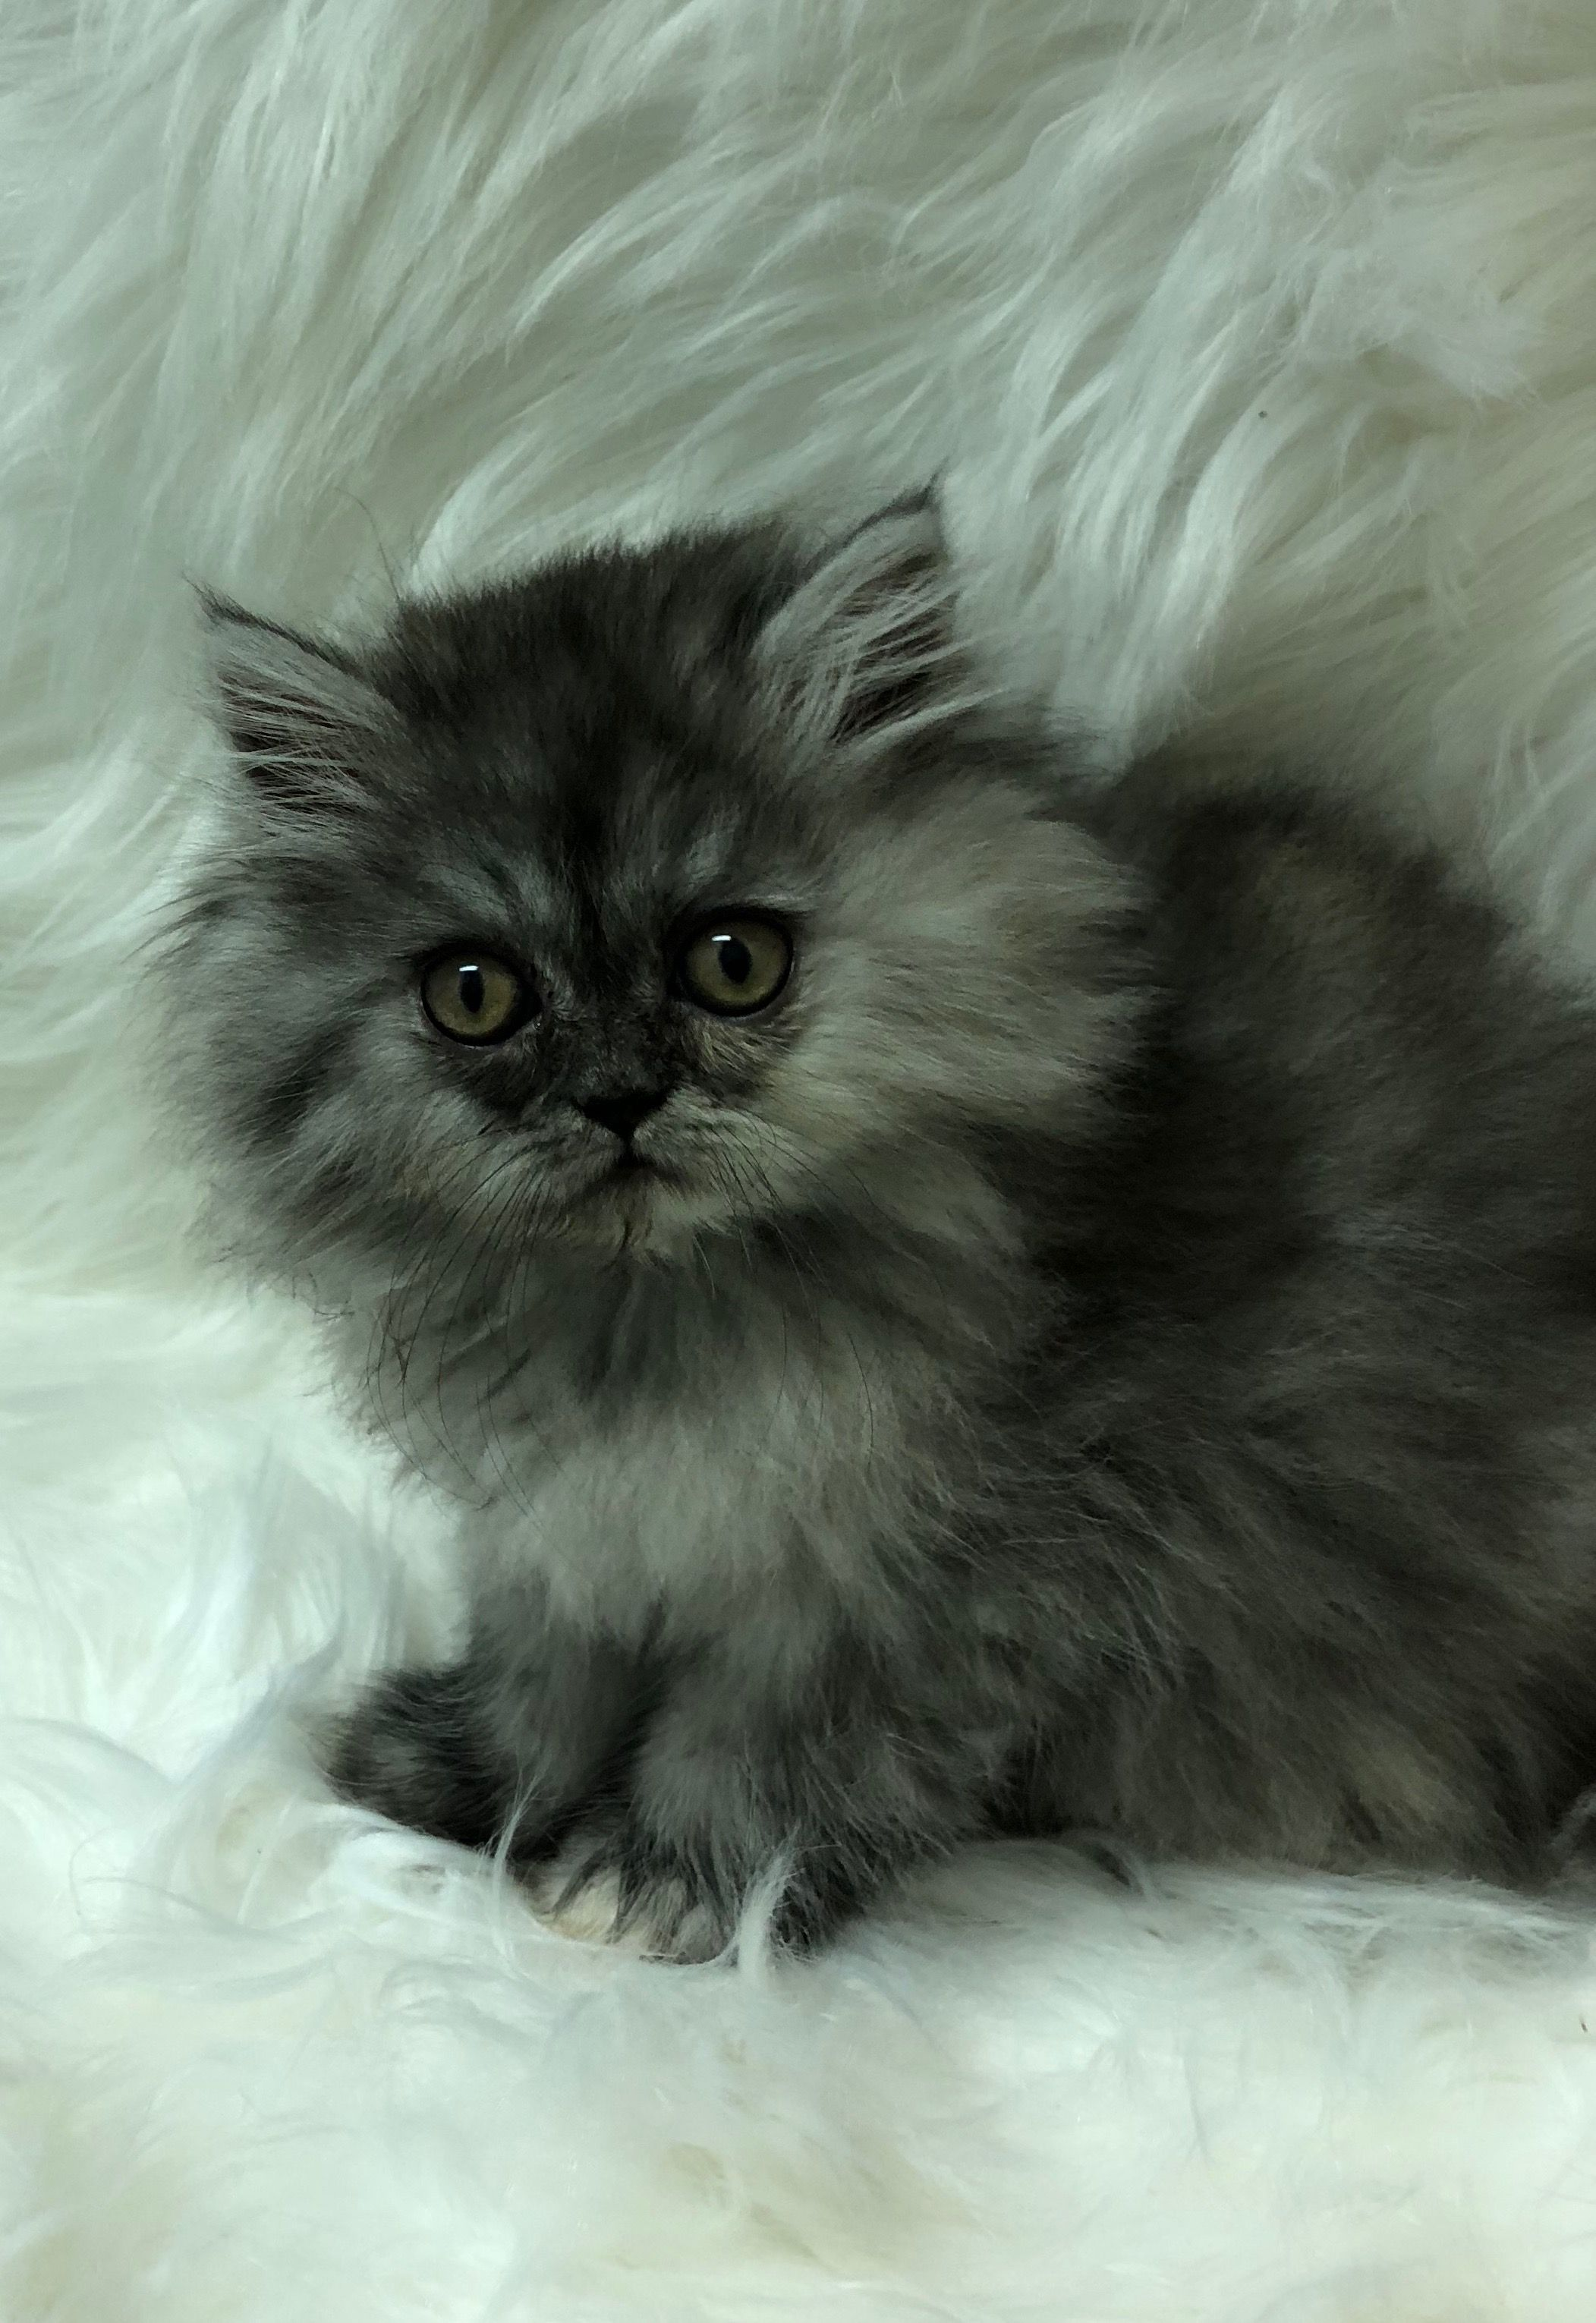 Pin By Kitty Cature Cattery On Gallery Of Persian Kittens For Sale Archived Sold Beautiful Kittens Persian Kittens For Sale Persian Kittens